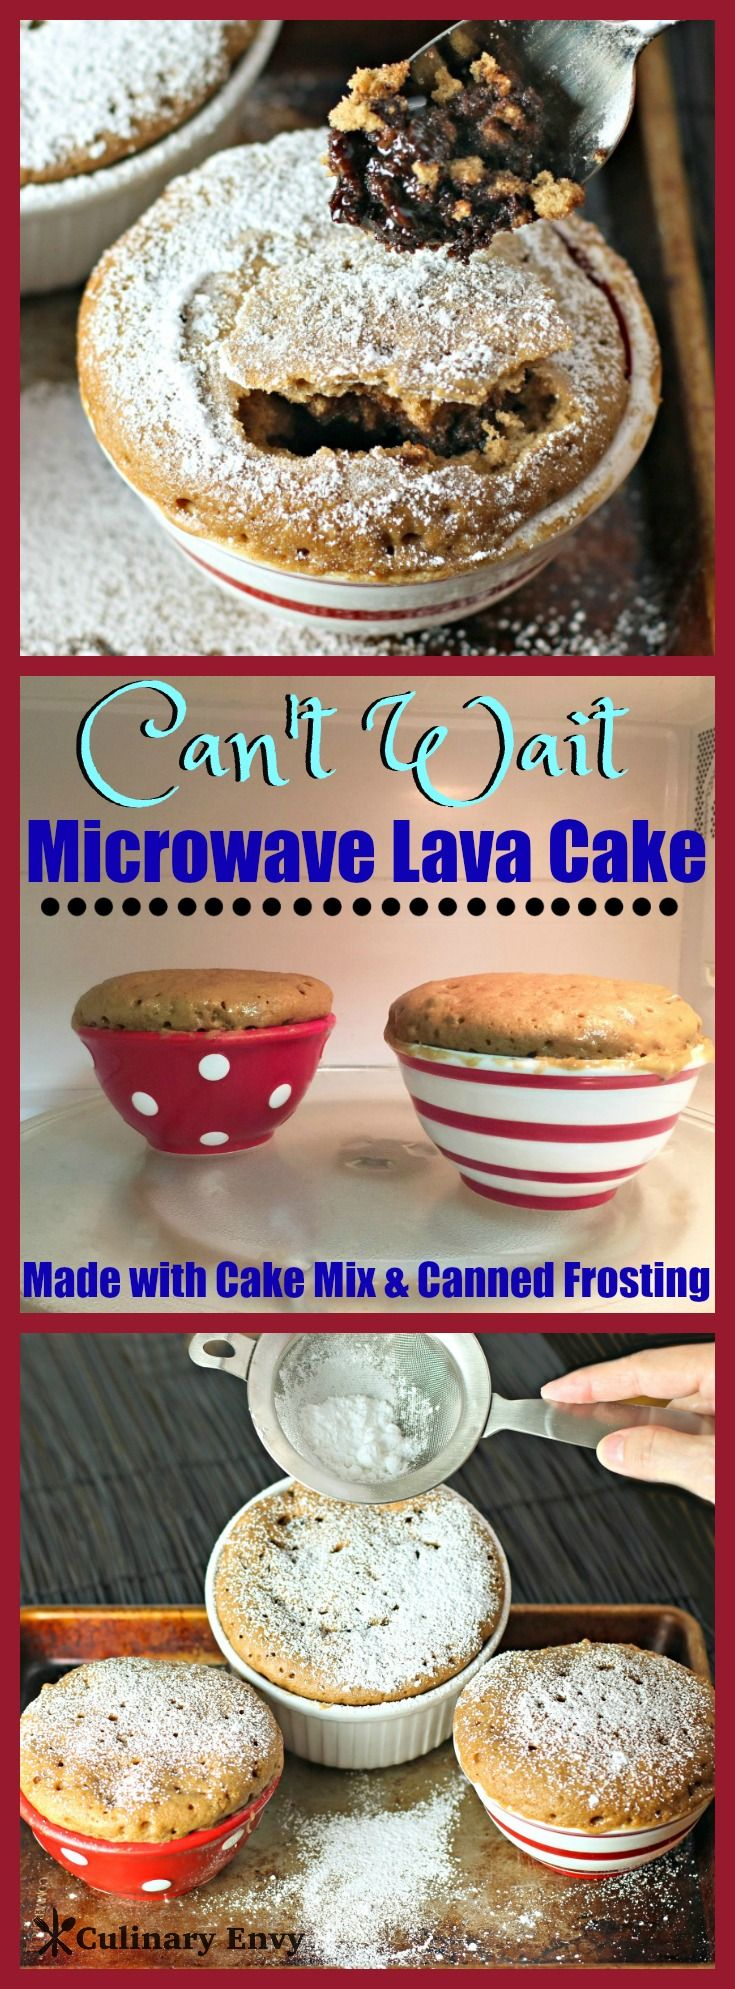 Can't Wait Microwave Lava Cake is ready in only 7 minutes and uses cake mix and prepared frosting in the can. It is the BEST microwave cake (with fudgy lava center) you'll ever try! Get ready for this quick, easy and delicious dessert to blow your mind! Click to read more.